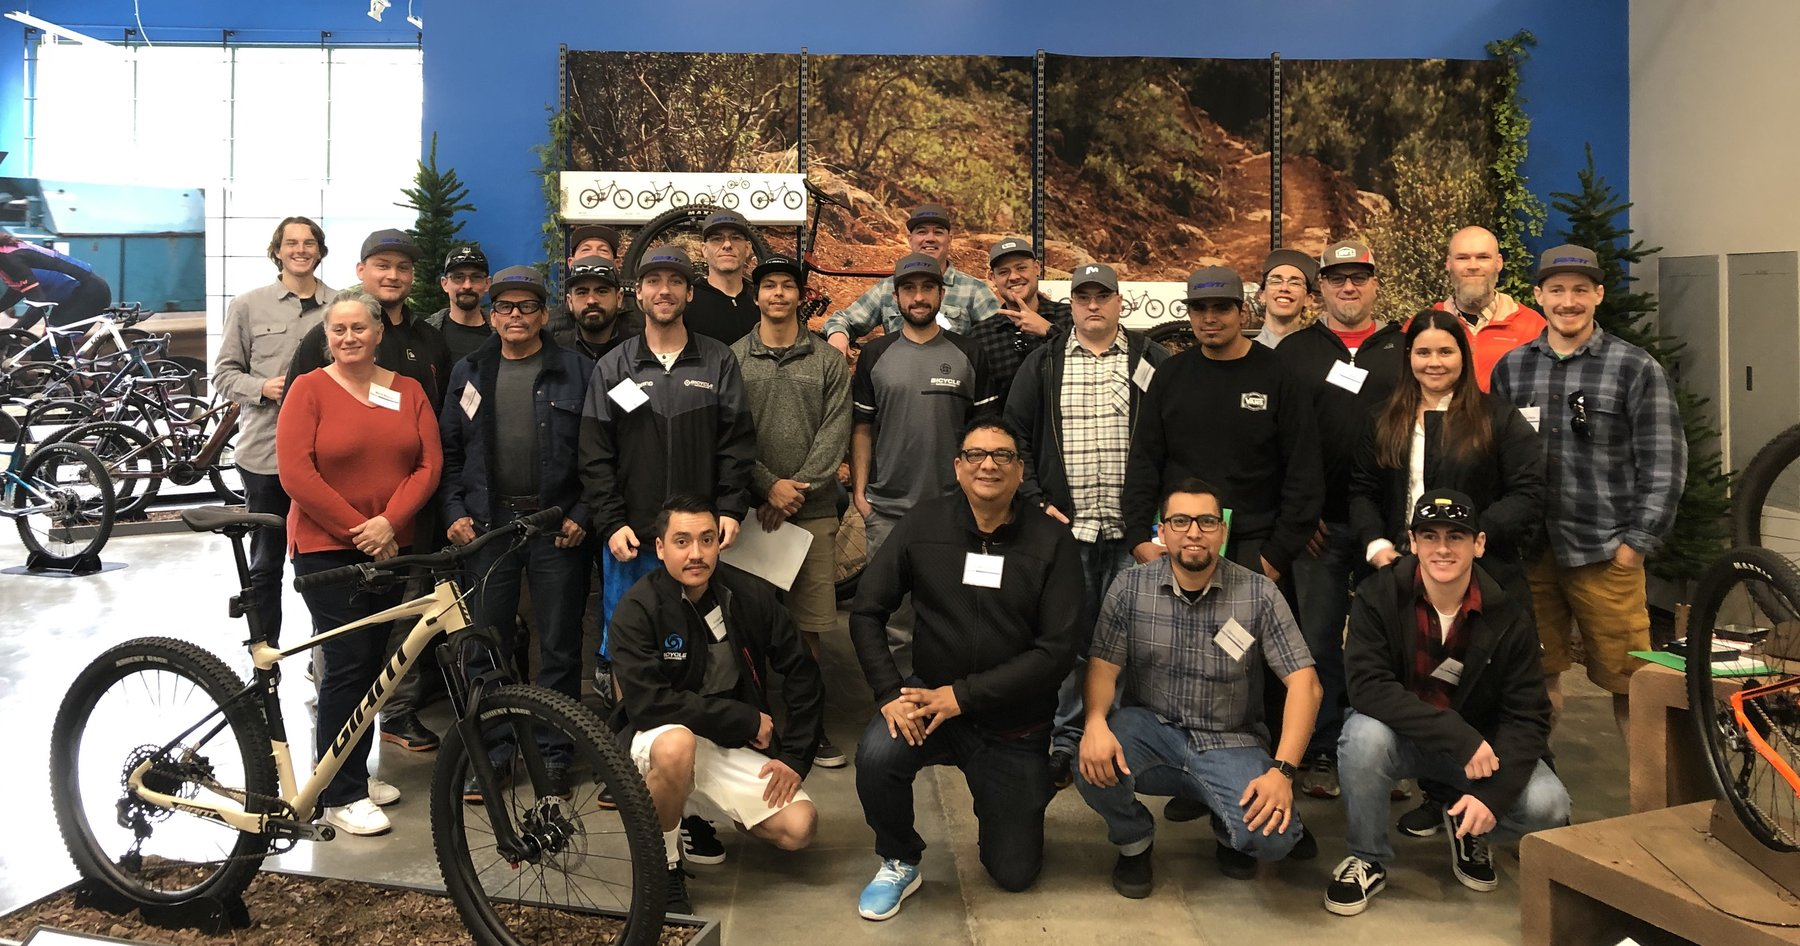 bicycle warehouse group photo at giant